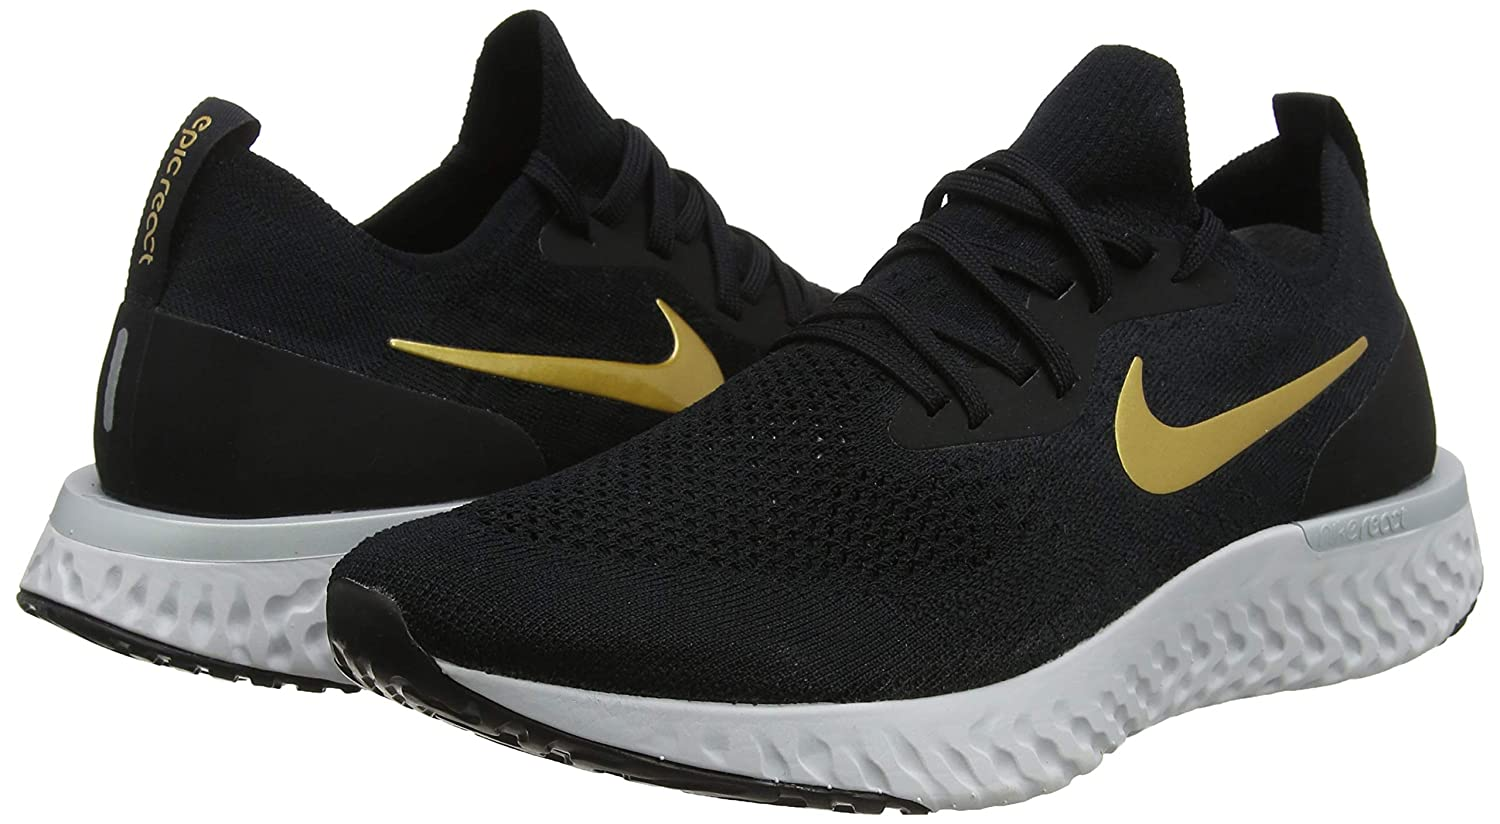 Amazon.com | Nike WMNS Epic React Flyknit [AQ0070-013] Women Running Shoes Black/Gold/US 5.5 | Road Running